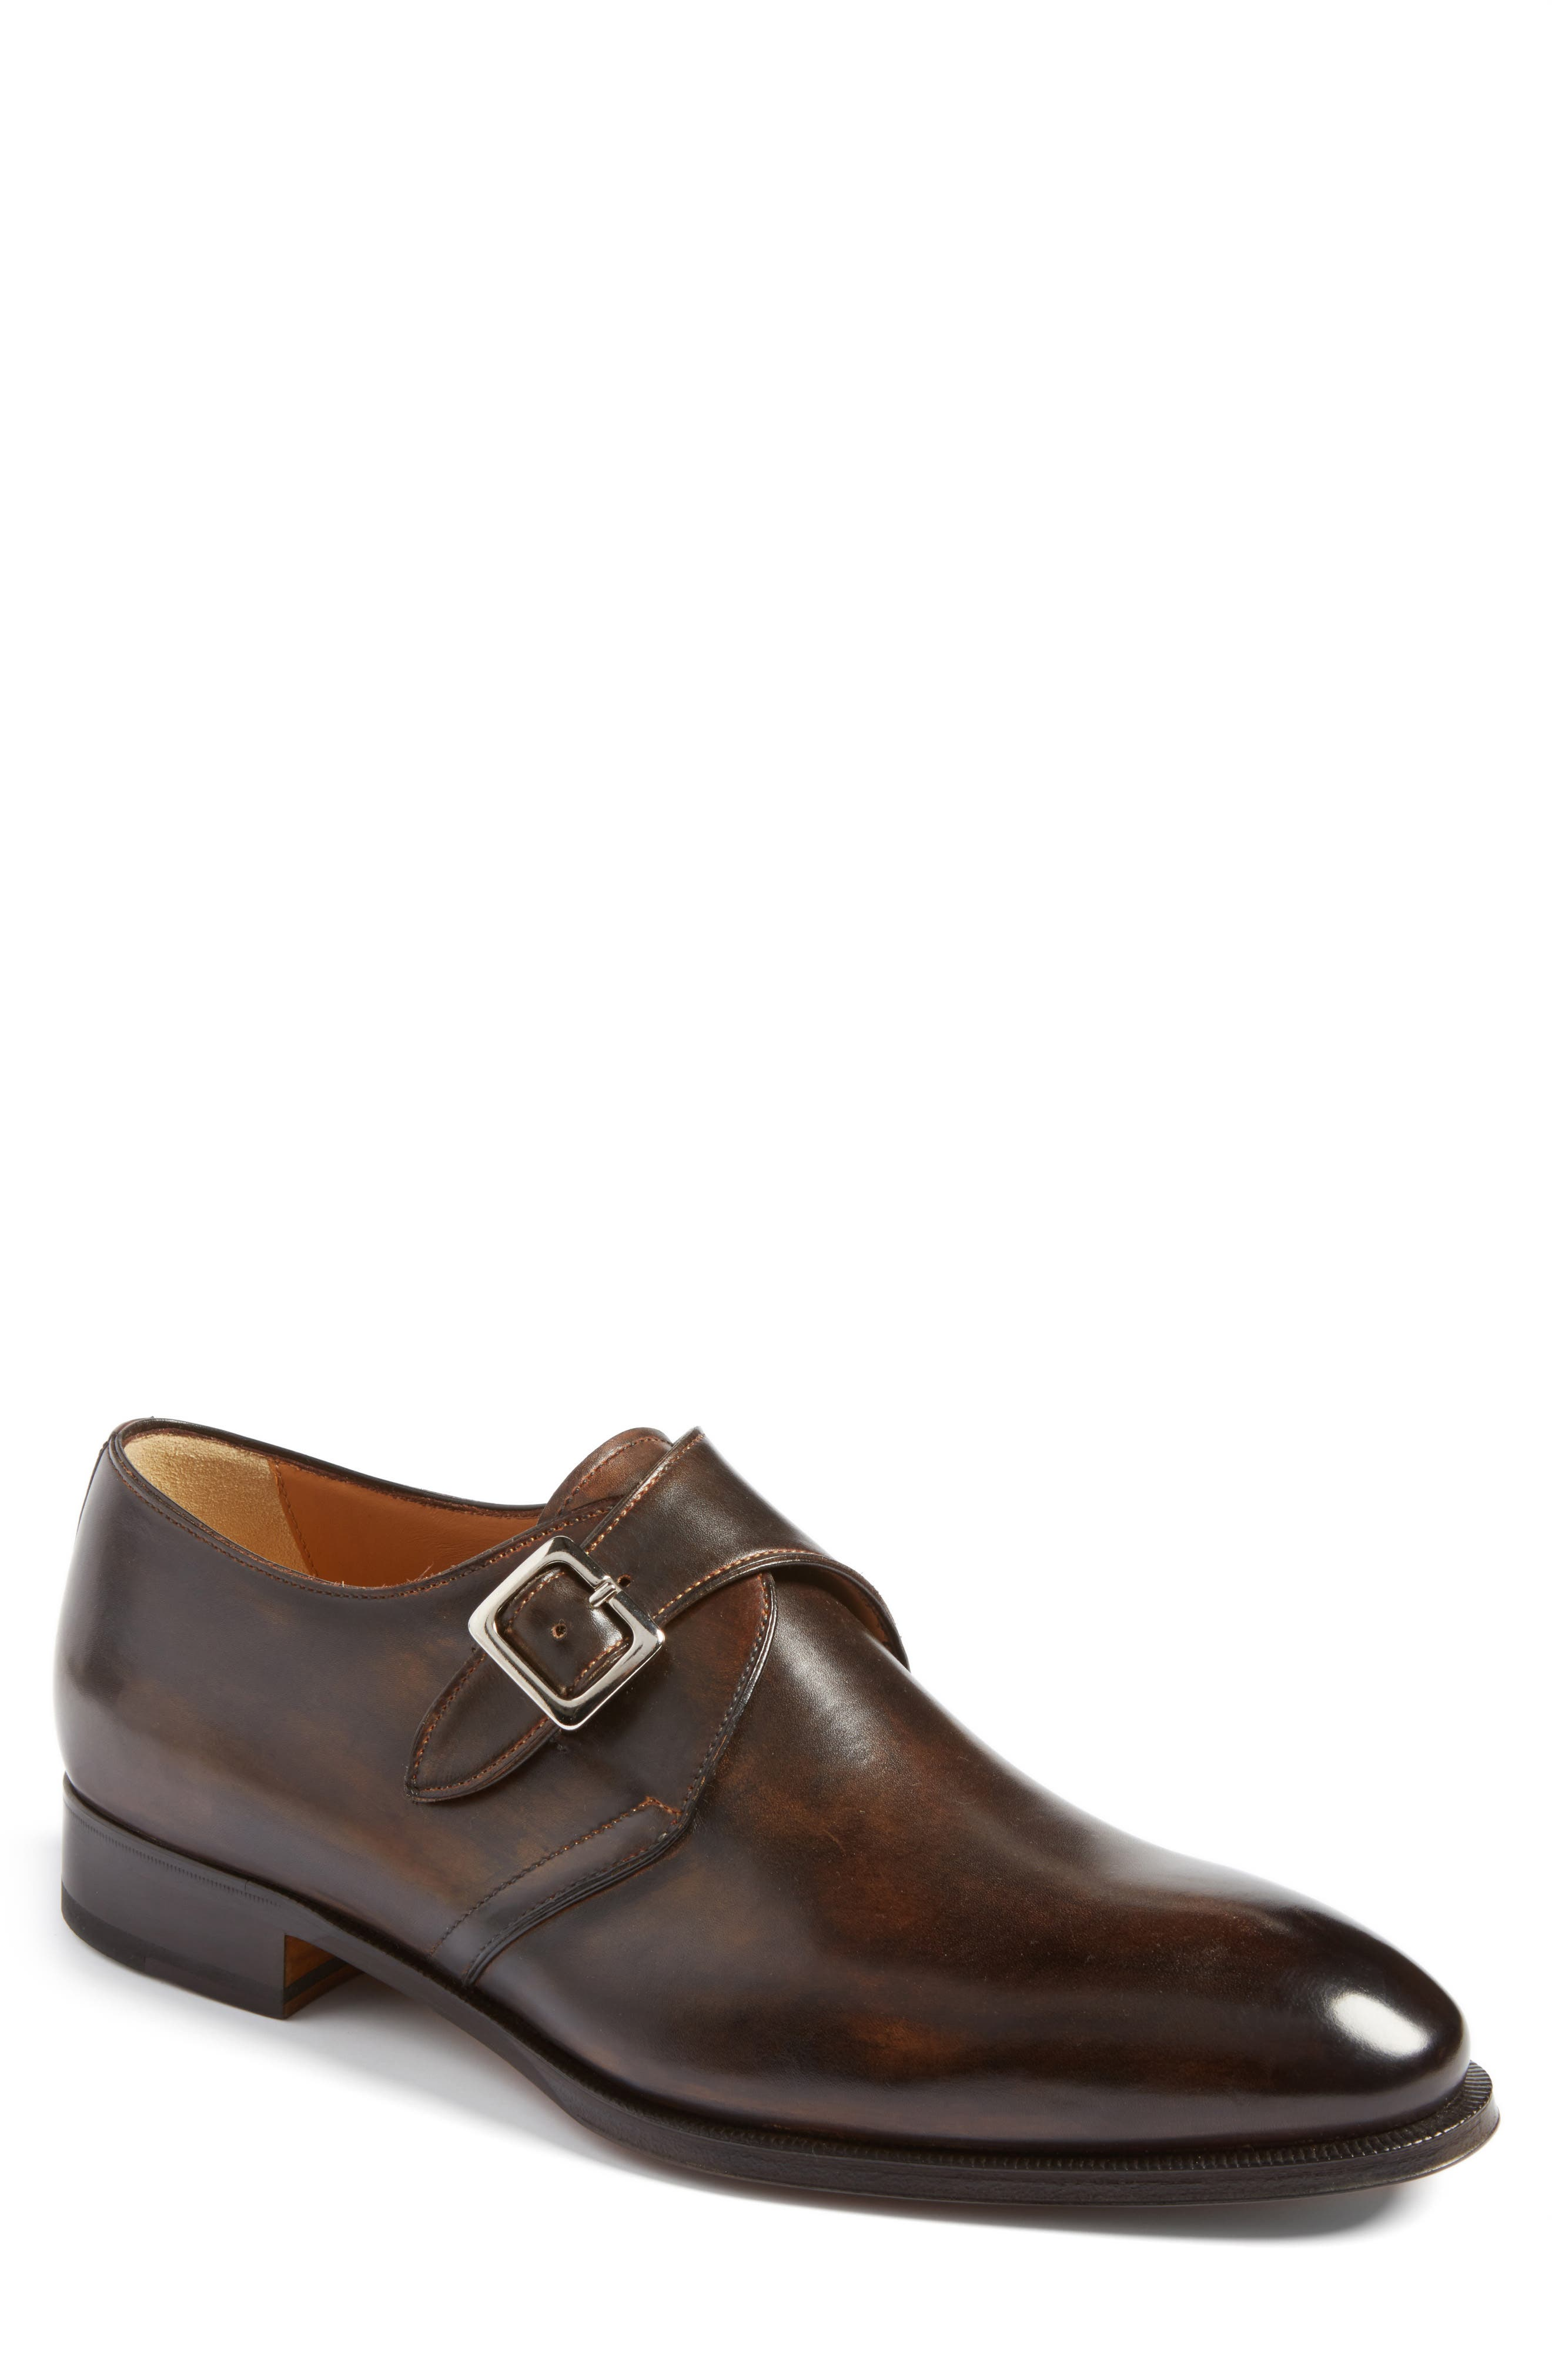 DI BIANCO GALLO Monk Strap Shoe